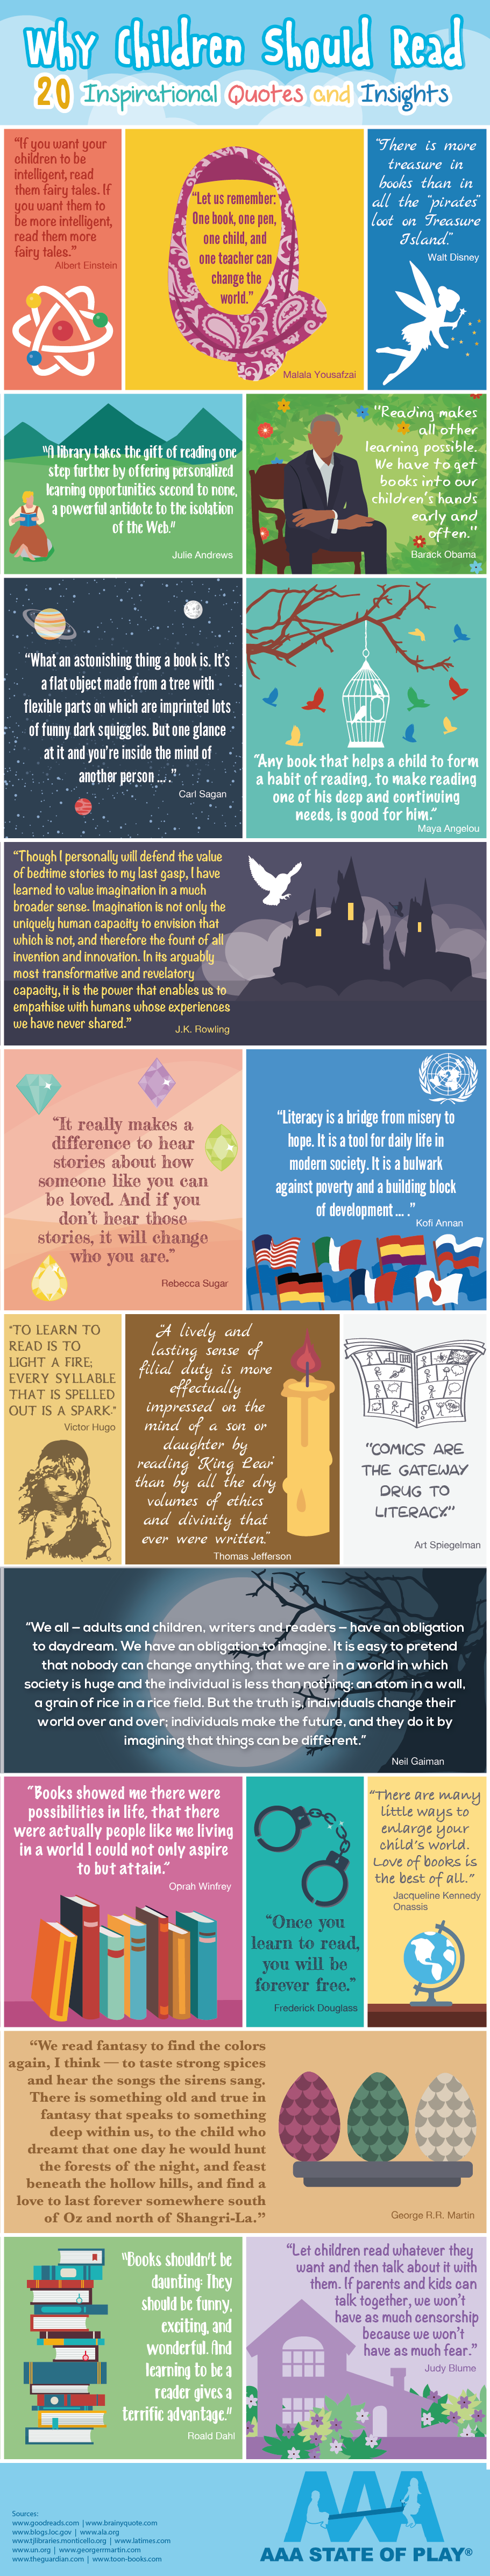 Why Children Should Read: 20 Inspirational Quotes and Insights #infographic